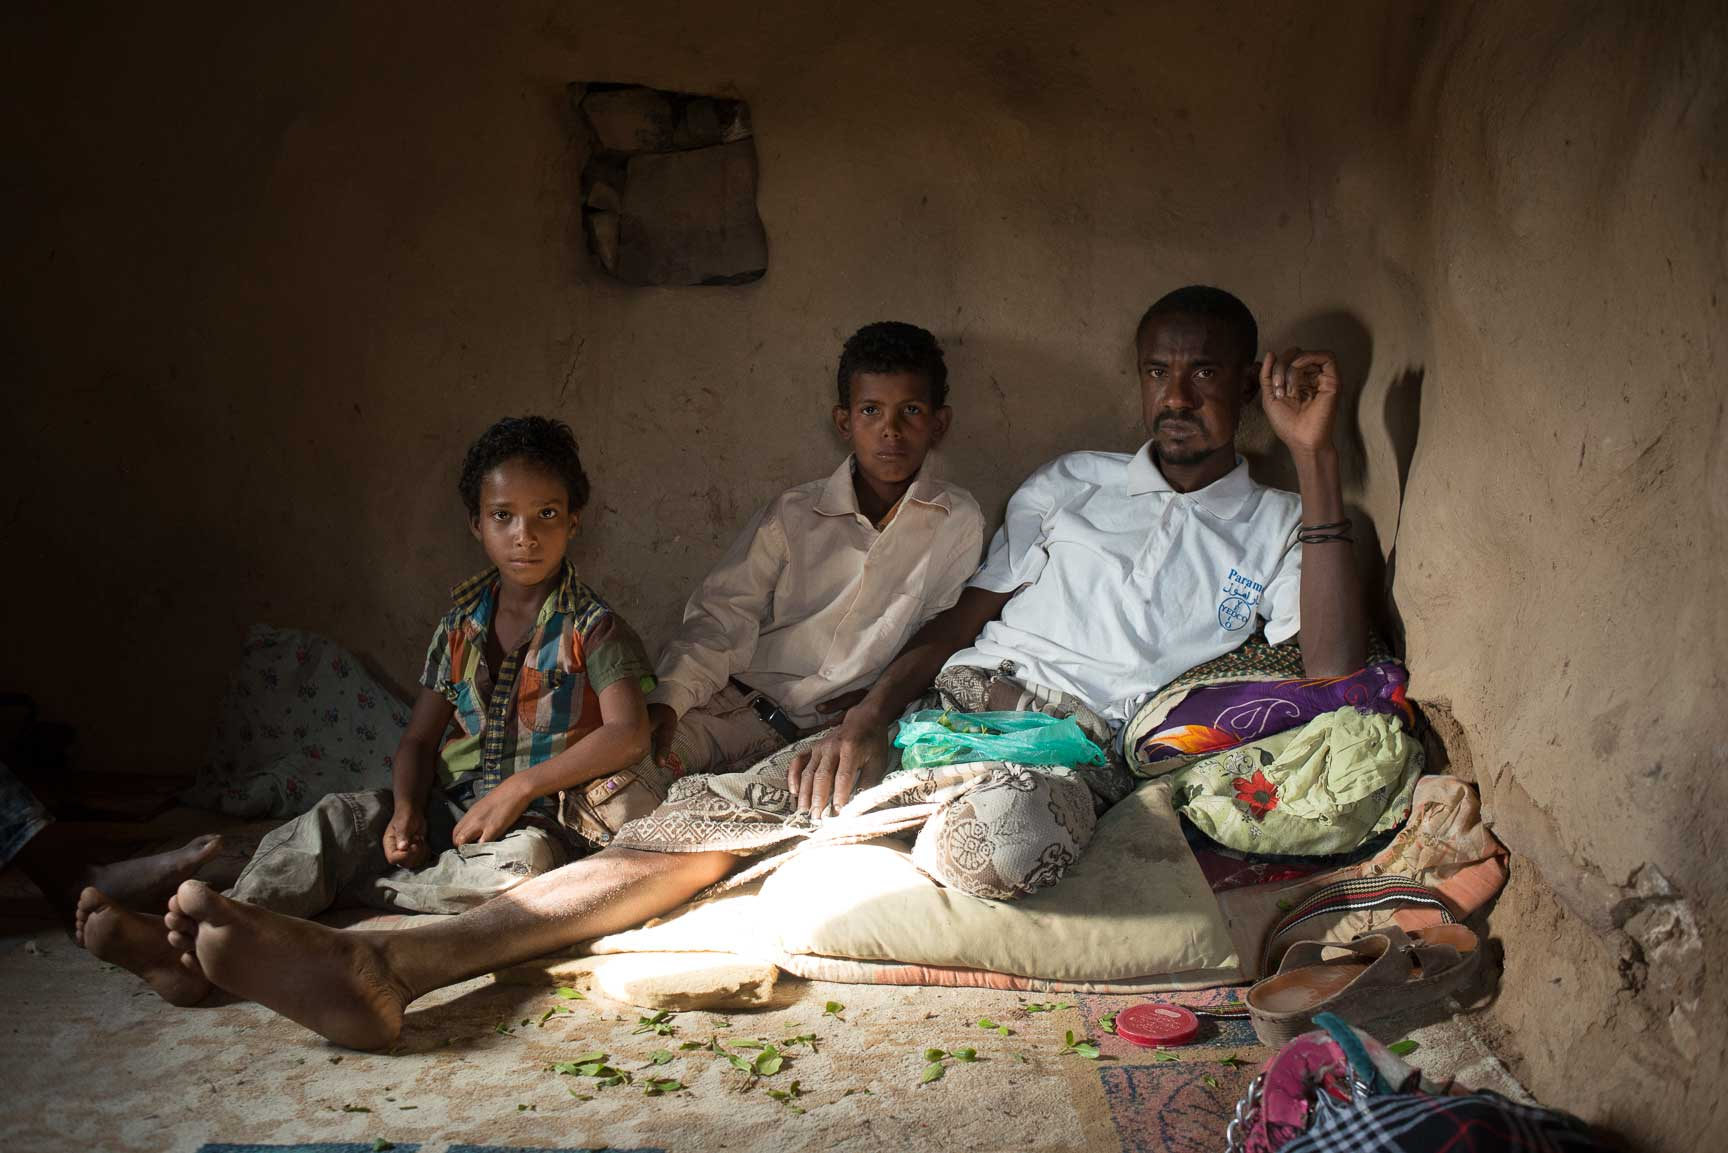 Fadhl Ahmad, a guard for the qat fields, sits with his two sons in his home on July 22, 2015. Since the war started, there has been no diesel to pump the water to water the qat, so he's had no work.